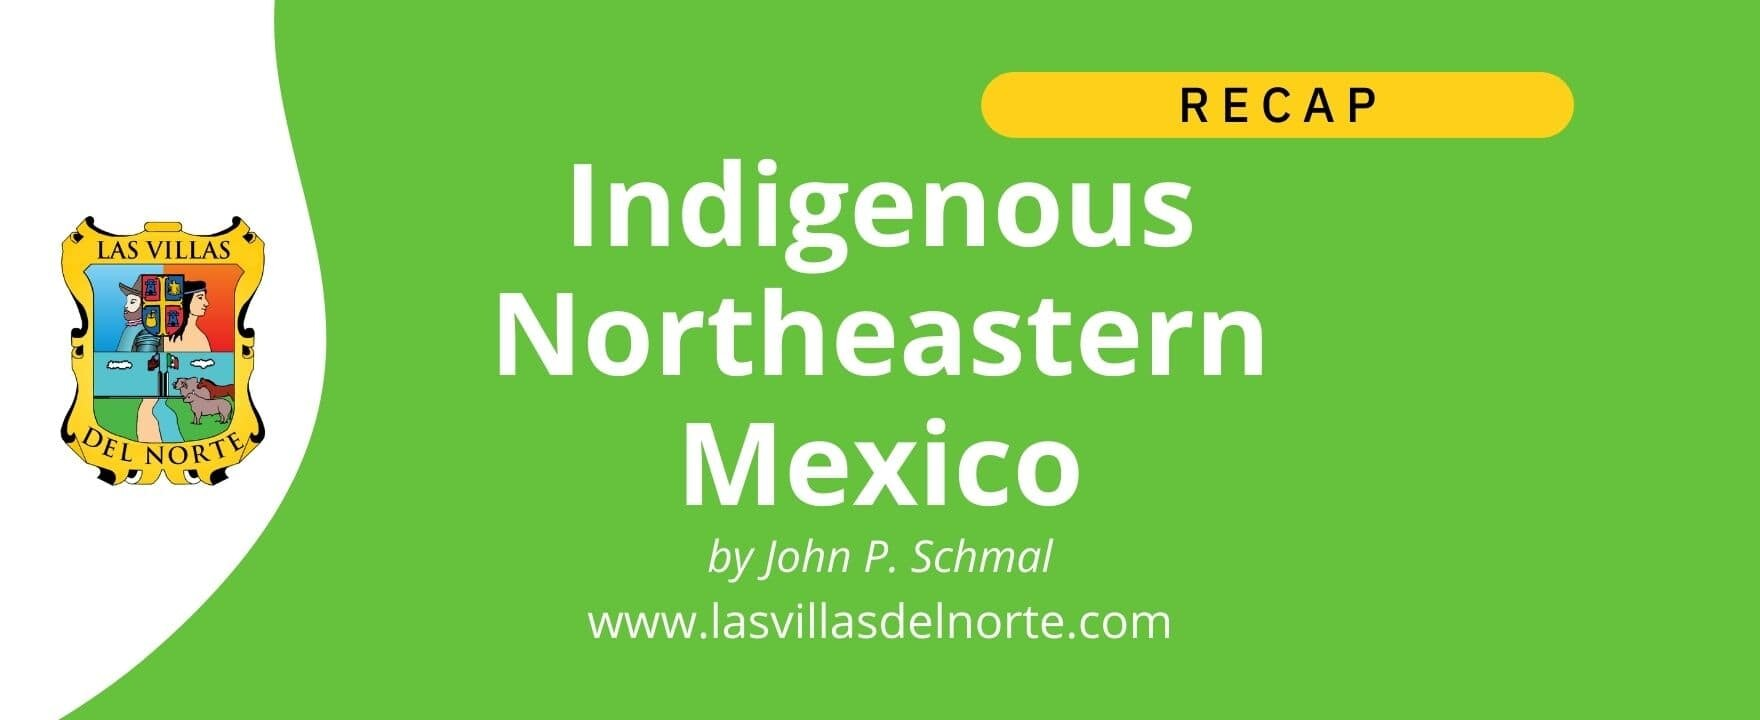 Indigenous Northeastern Mexico